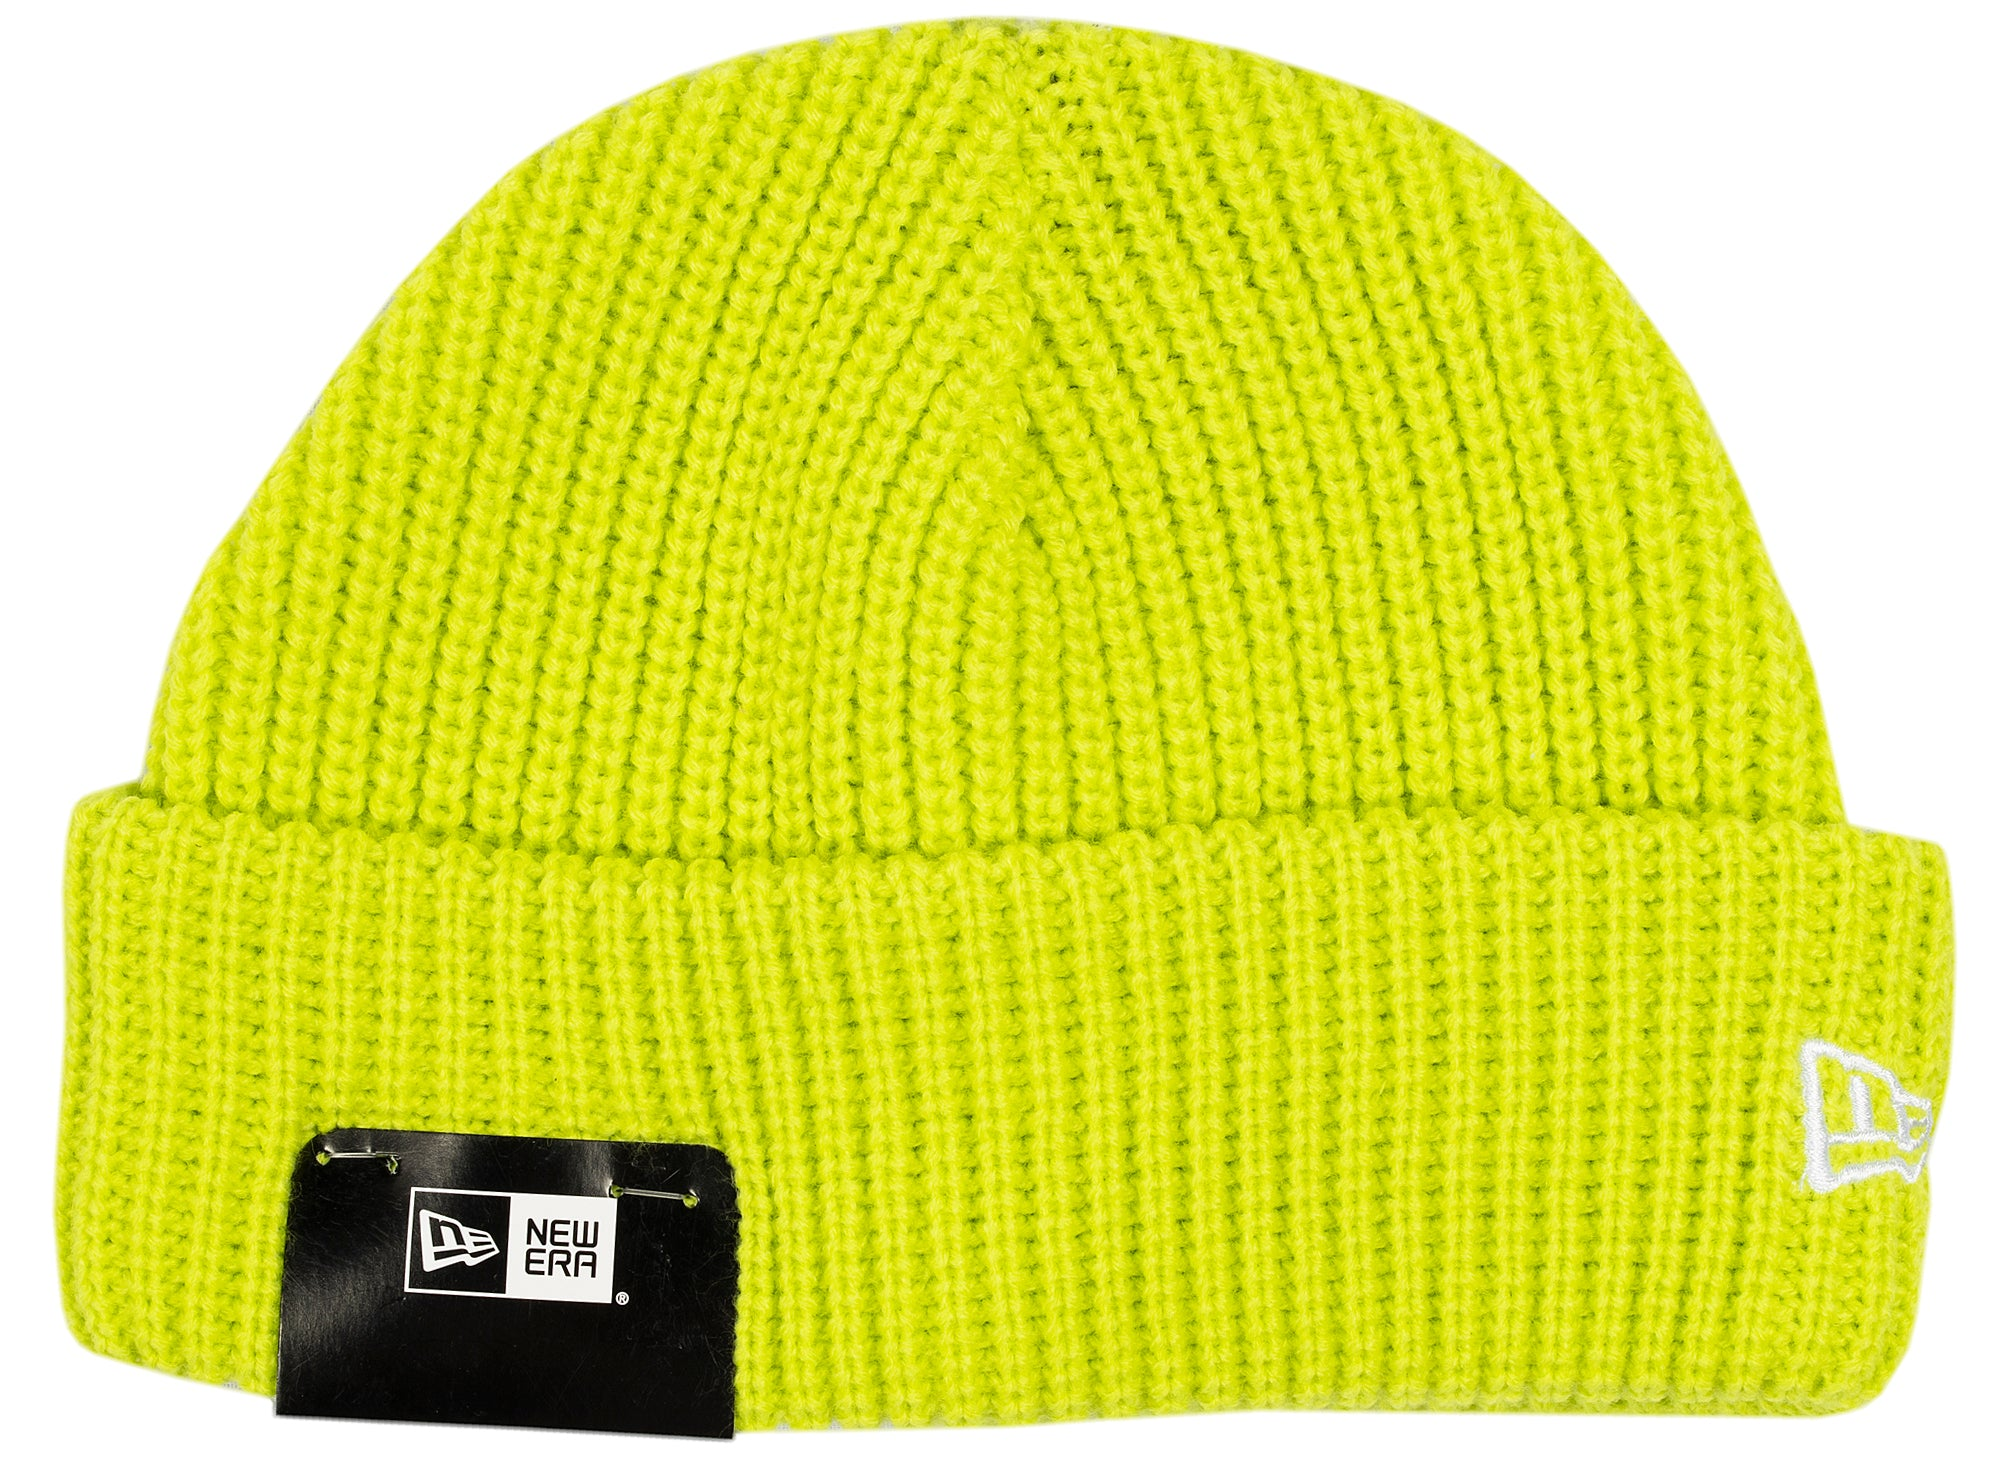 New Era Knit Skully Cap in Cyber Green xld